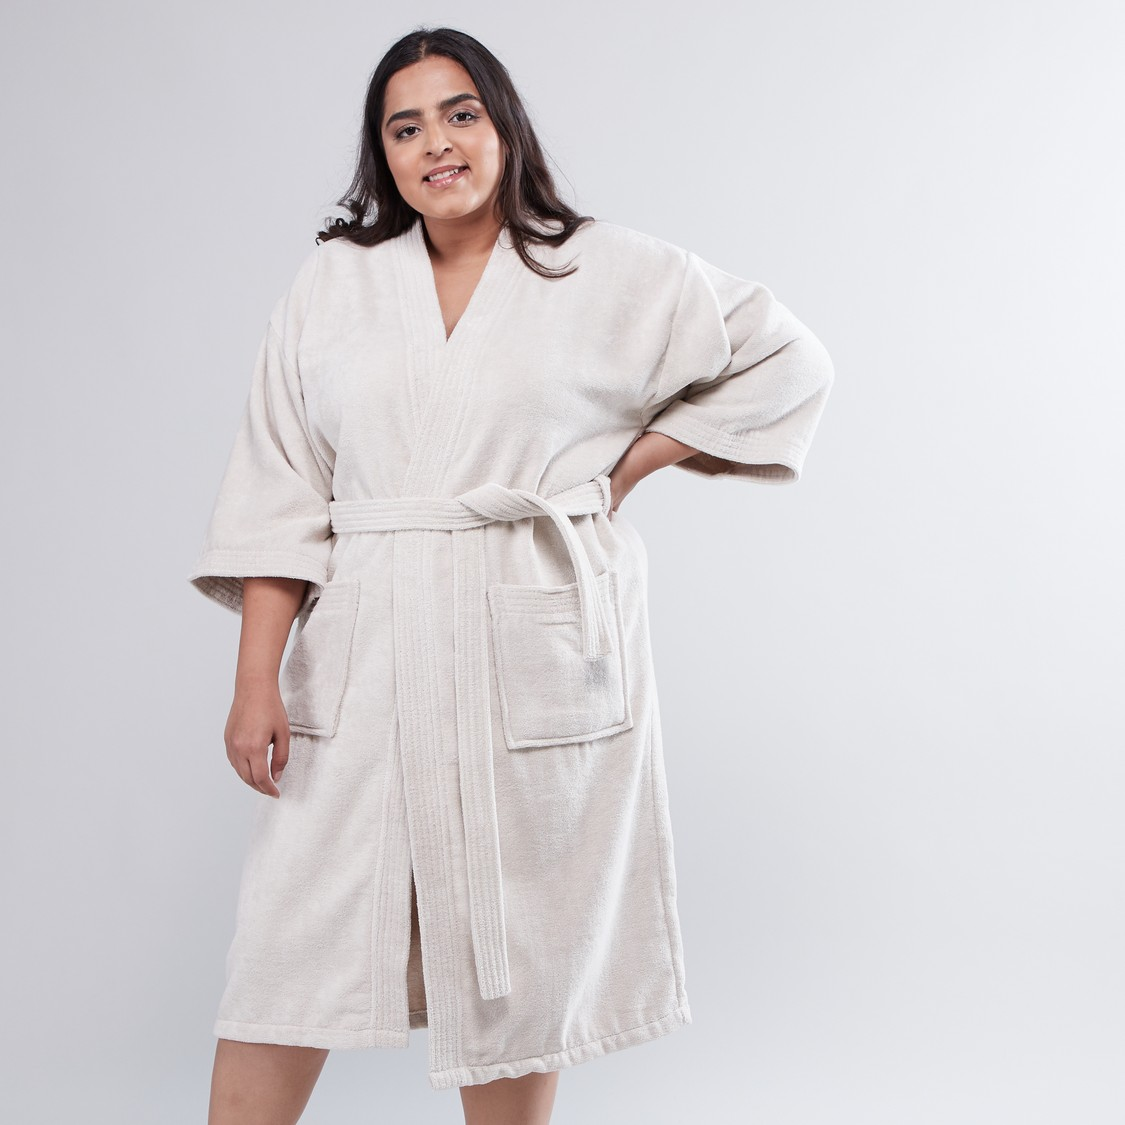 Textured Bathrobe with 3/4 Sleeves and Belt - Double XL